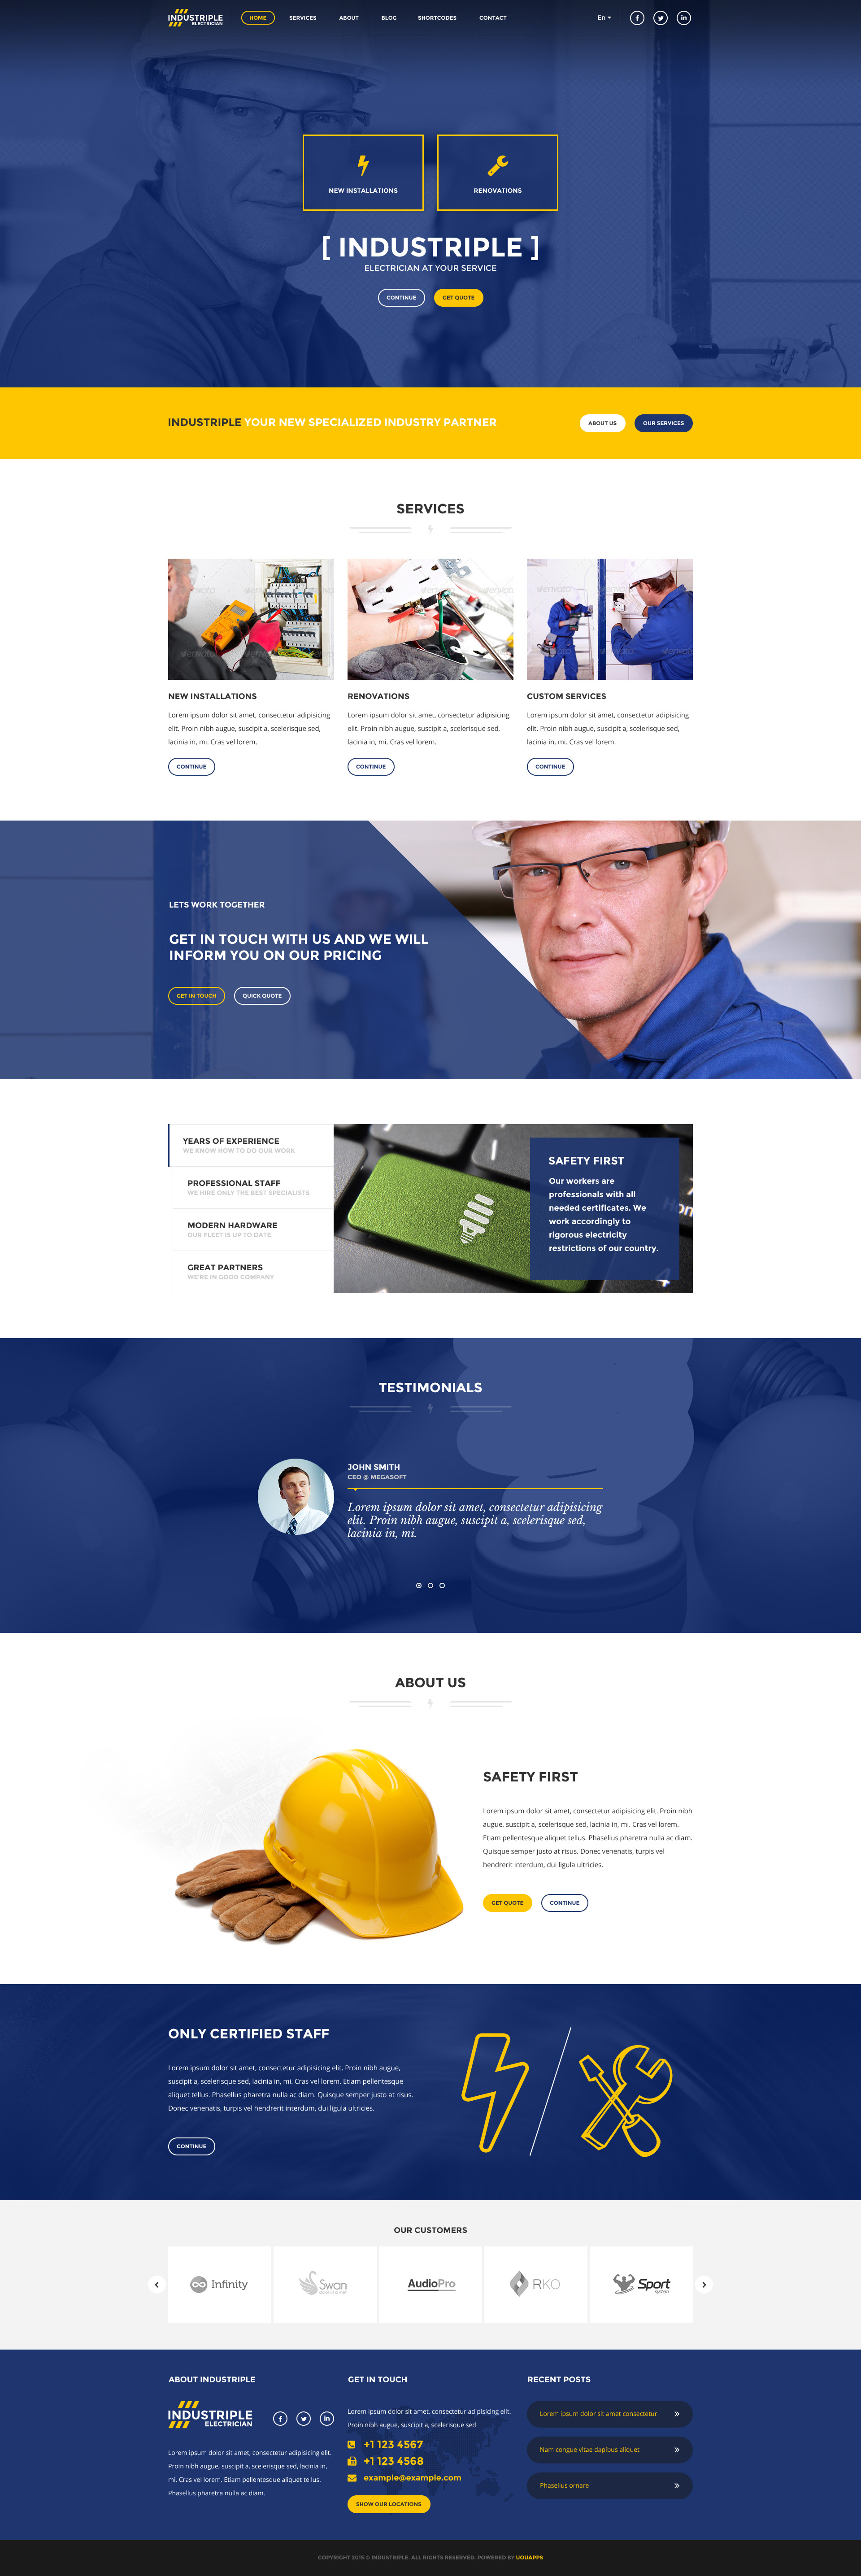 industriple multi industrial template by directorythemes themeforest